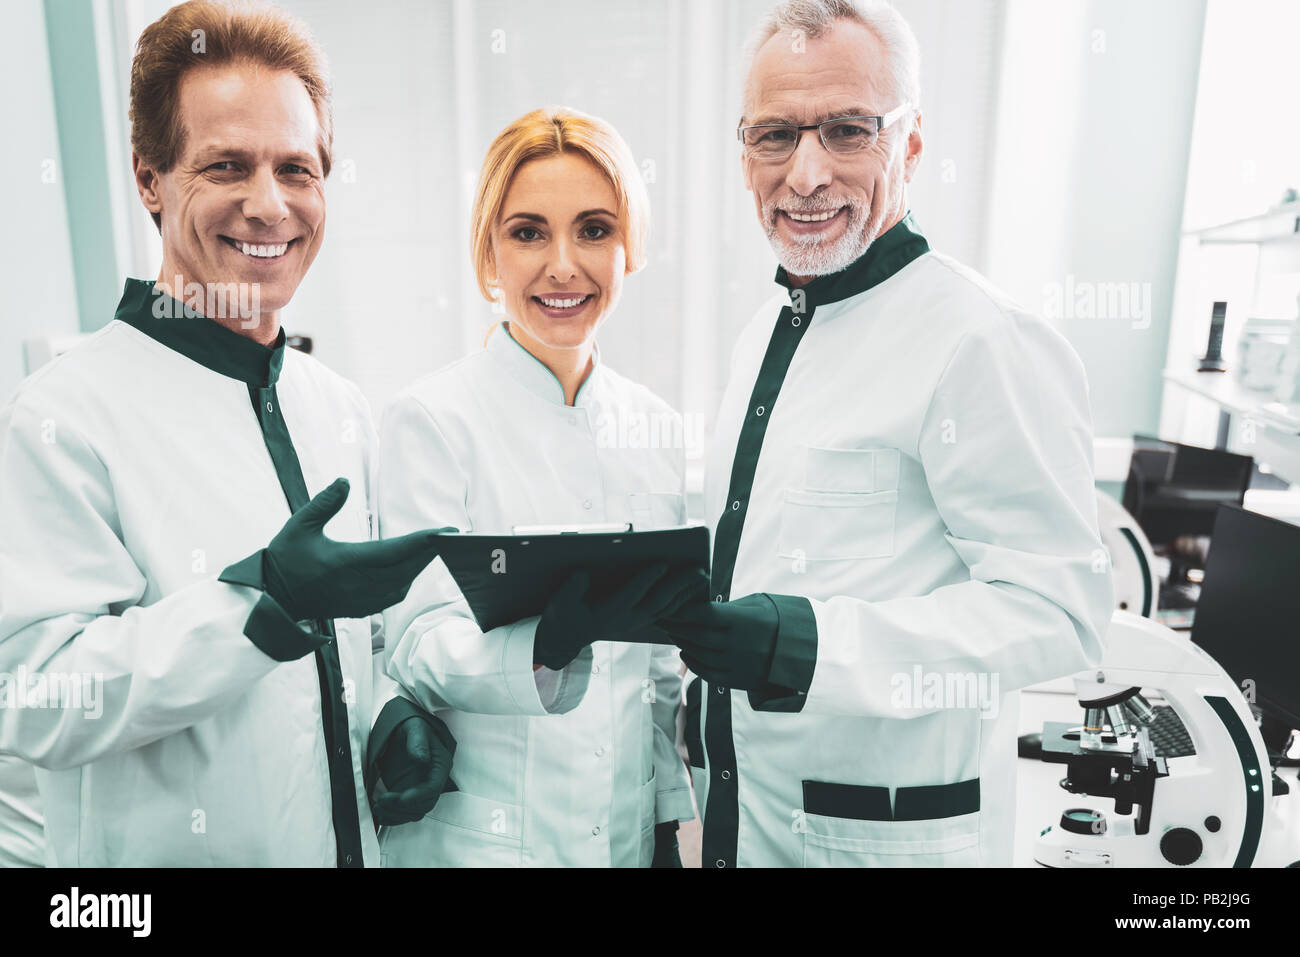 Female engineer joining company of two male workers - Stock Image